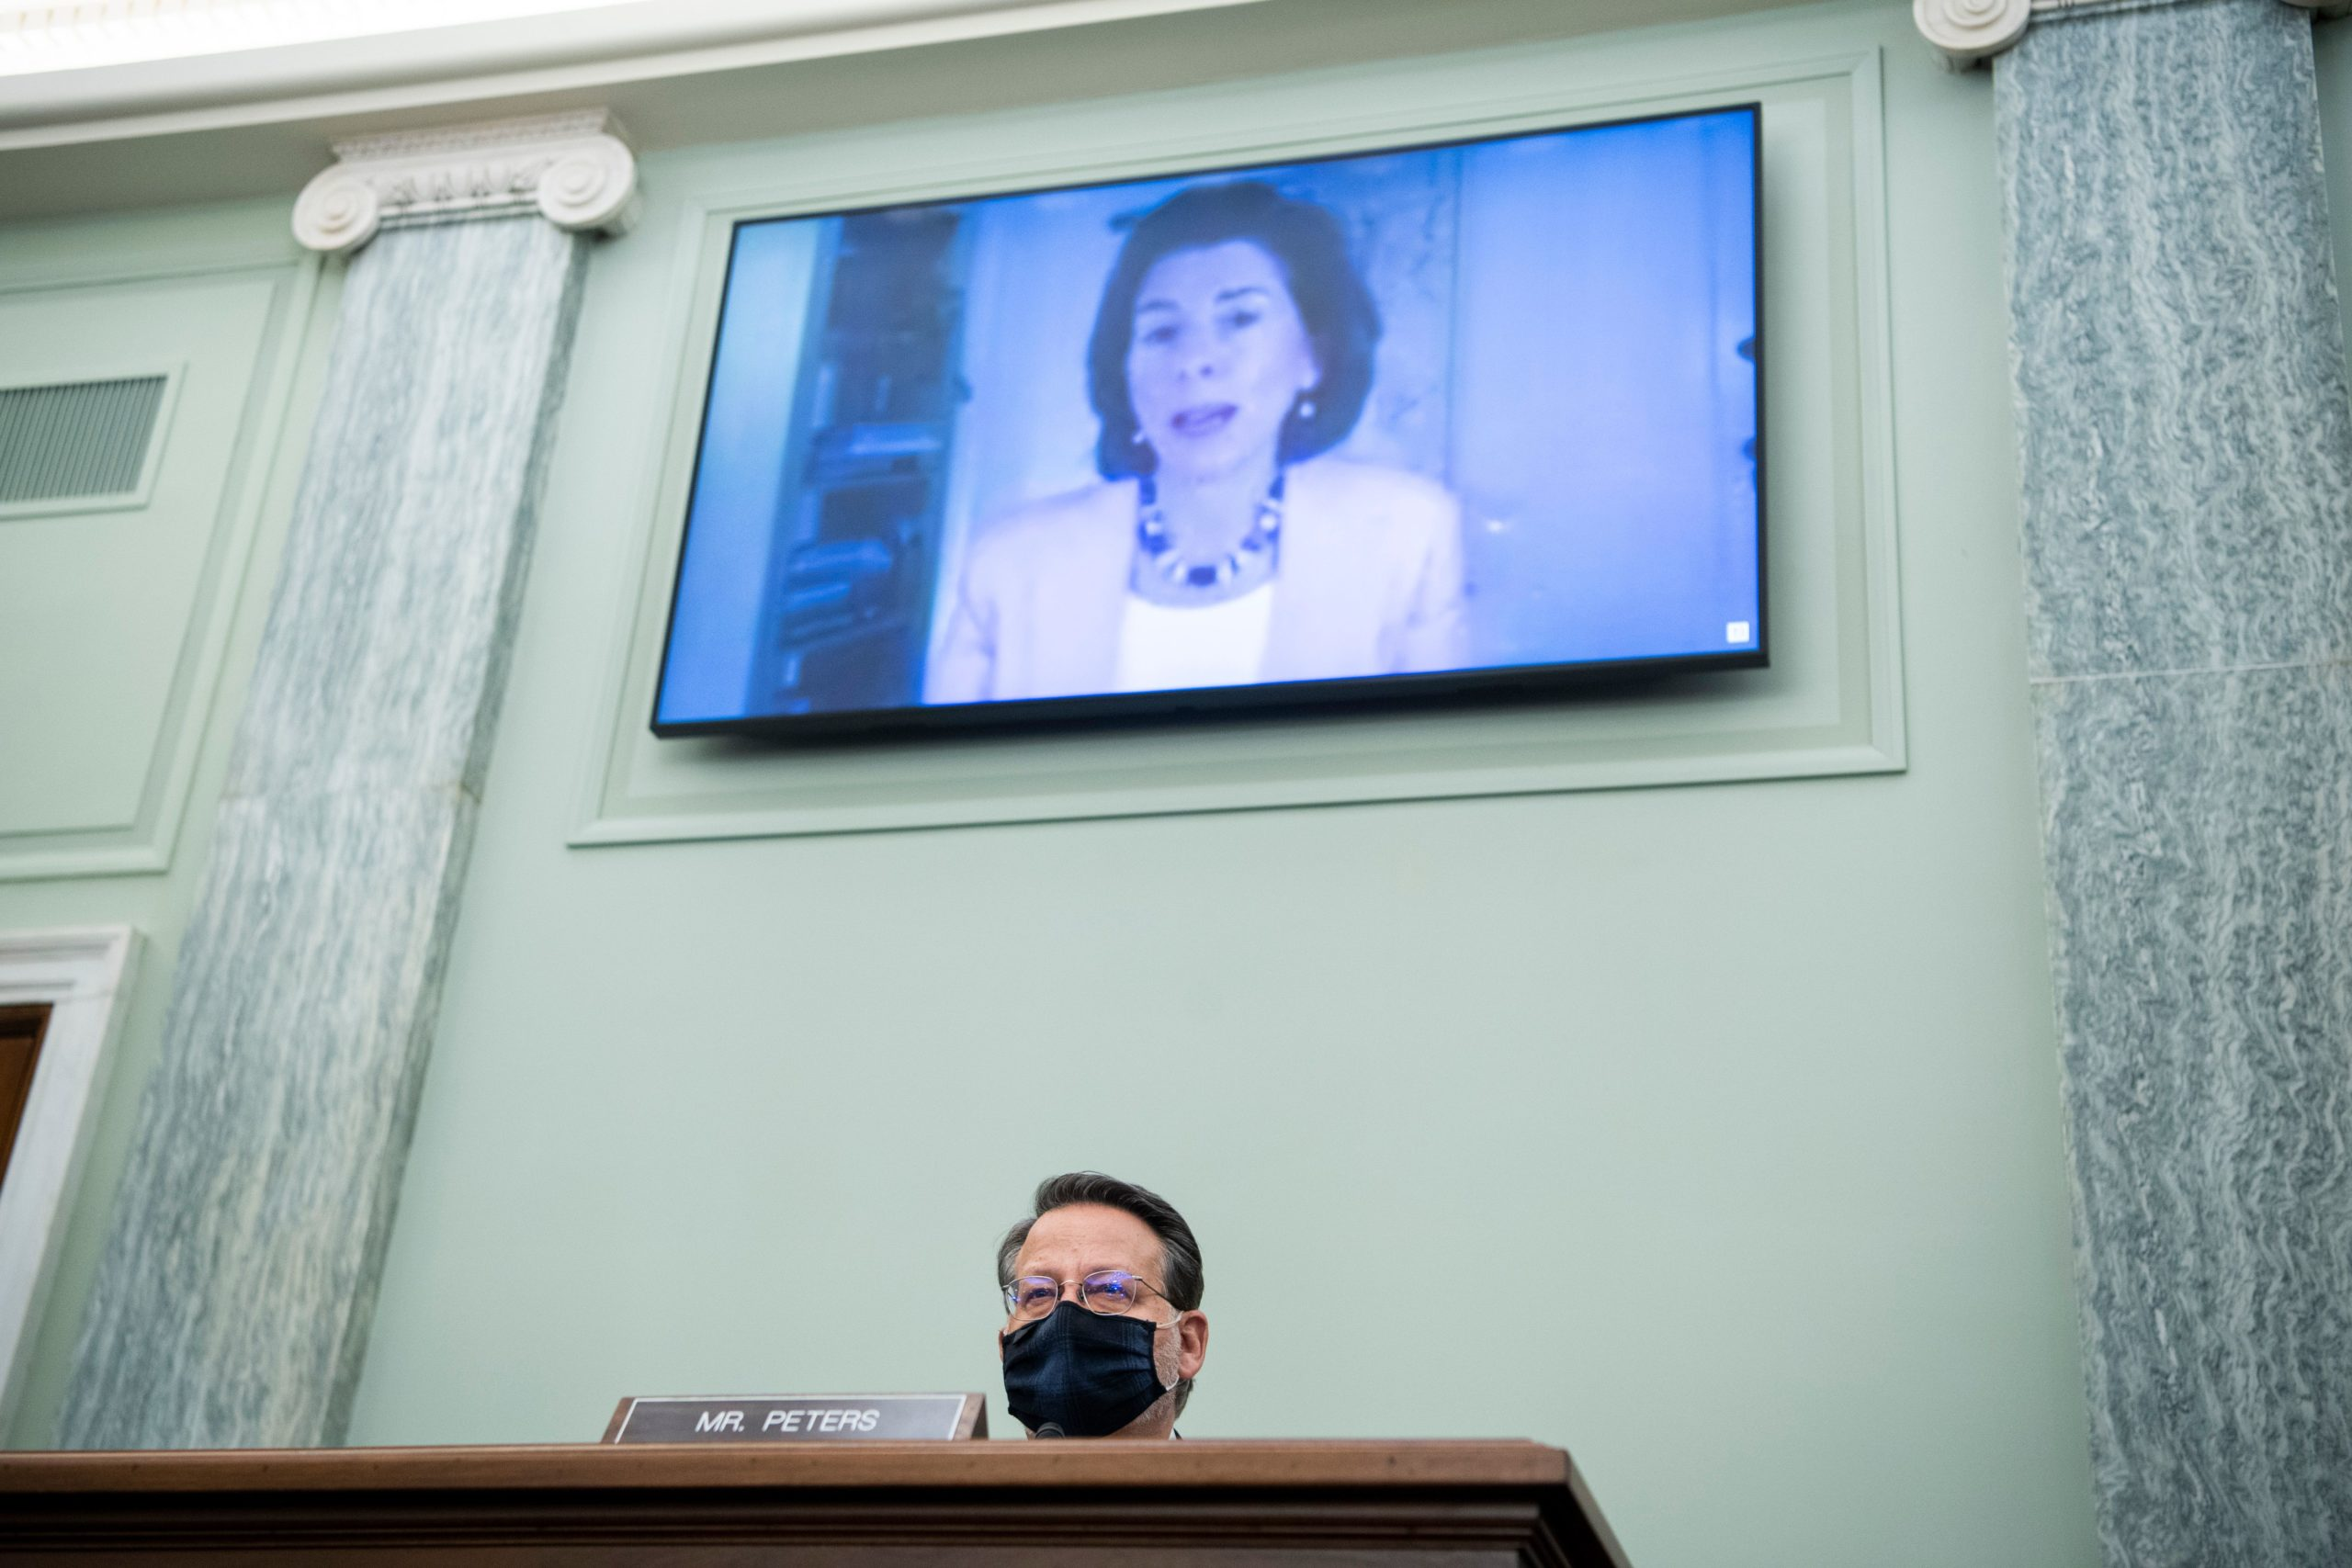 Sen. Gary Peters questions Gina Raimondo during her Senate confirmation hearing in January. (Tom Williams/Pool/AFP via Getty Images)